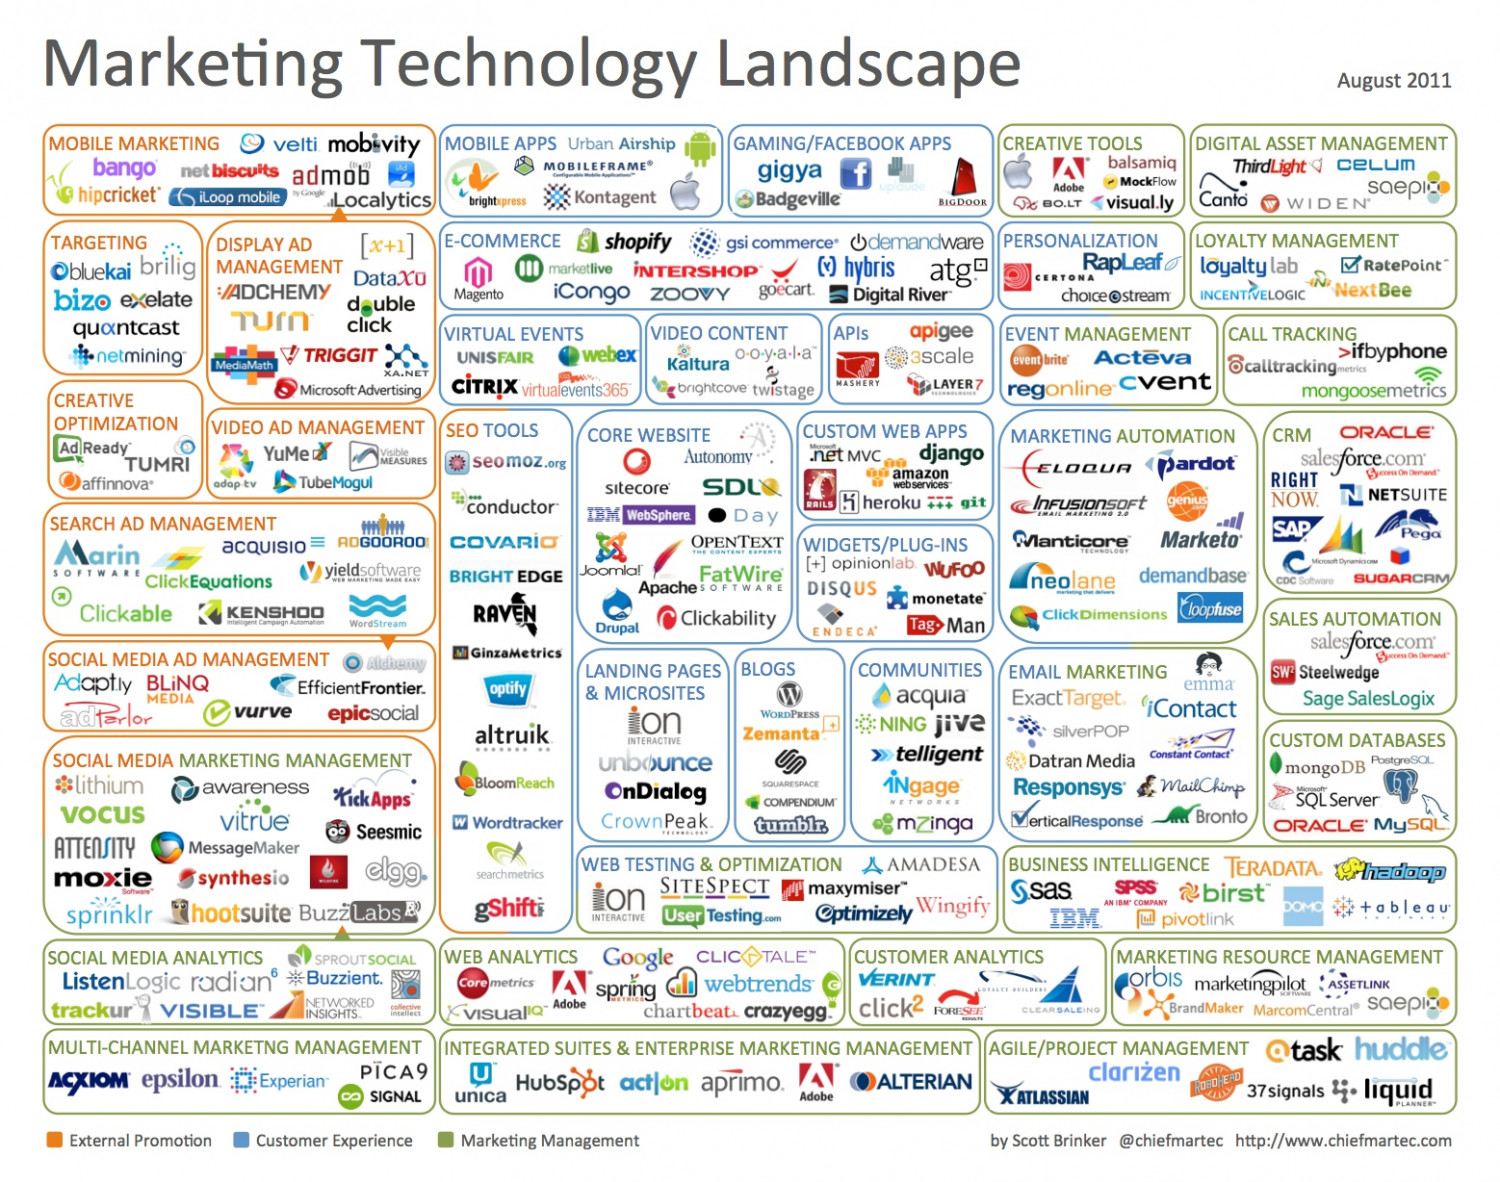 Marketing Technology Landscape Infographic